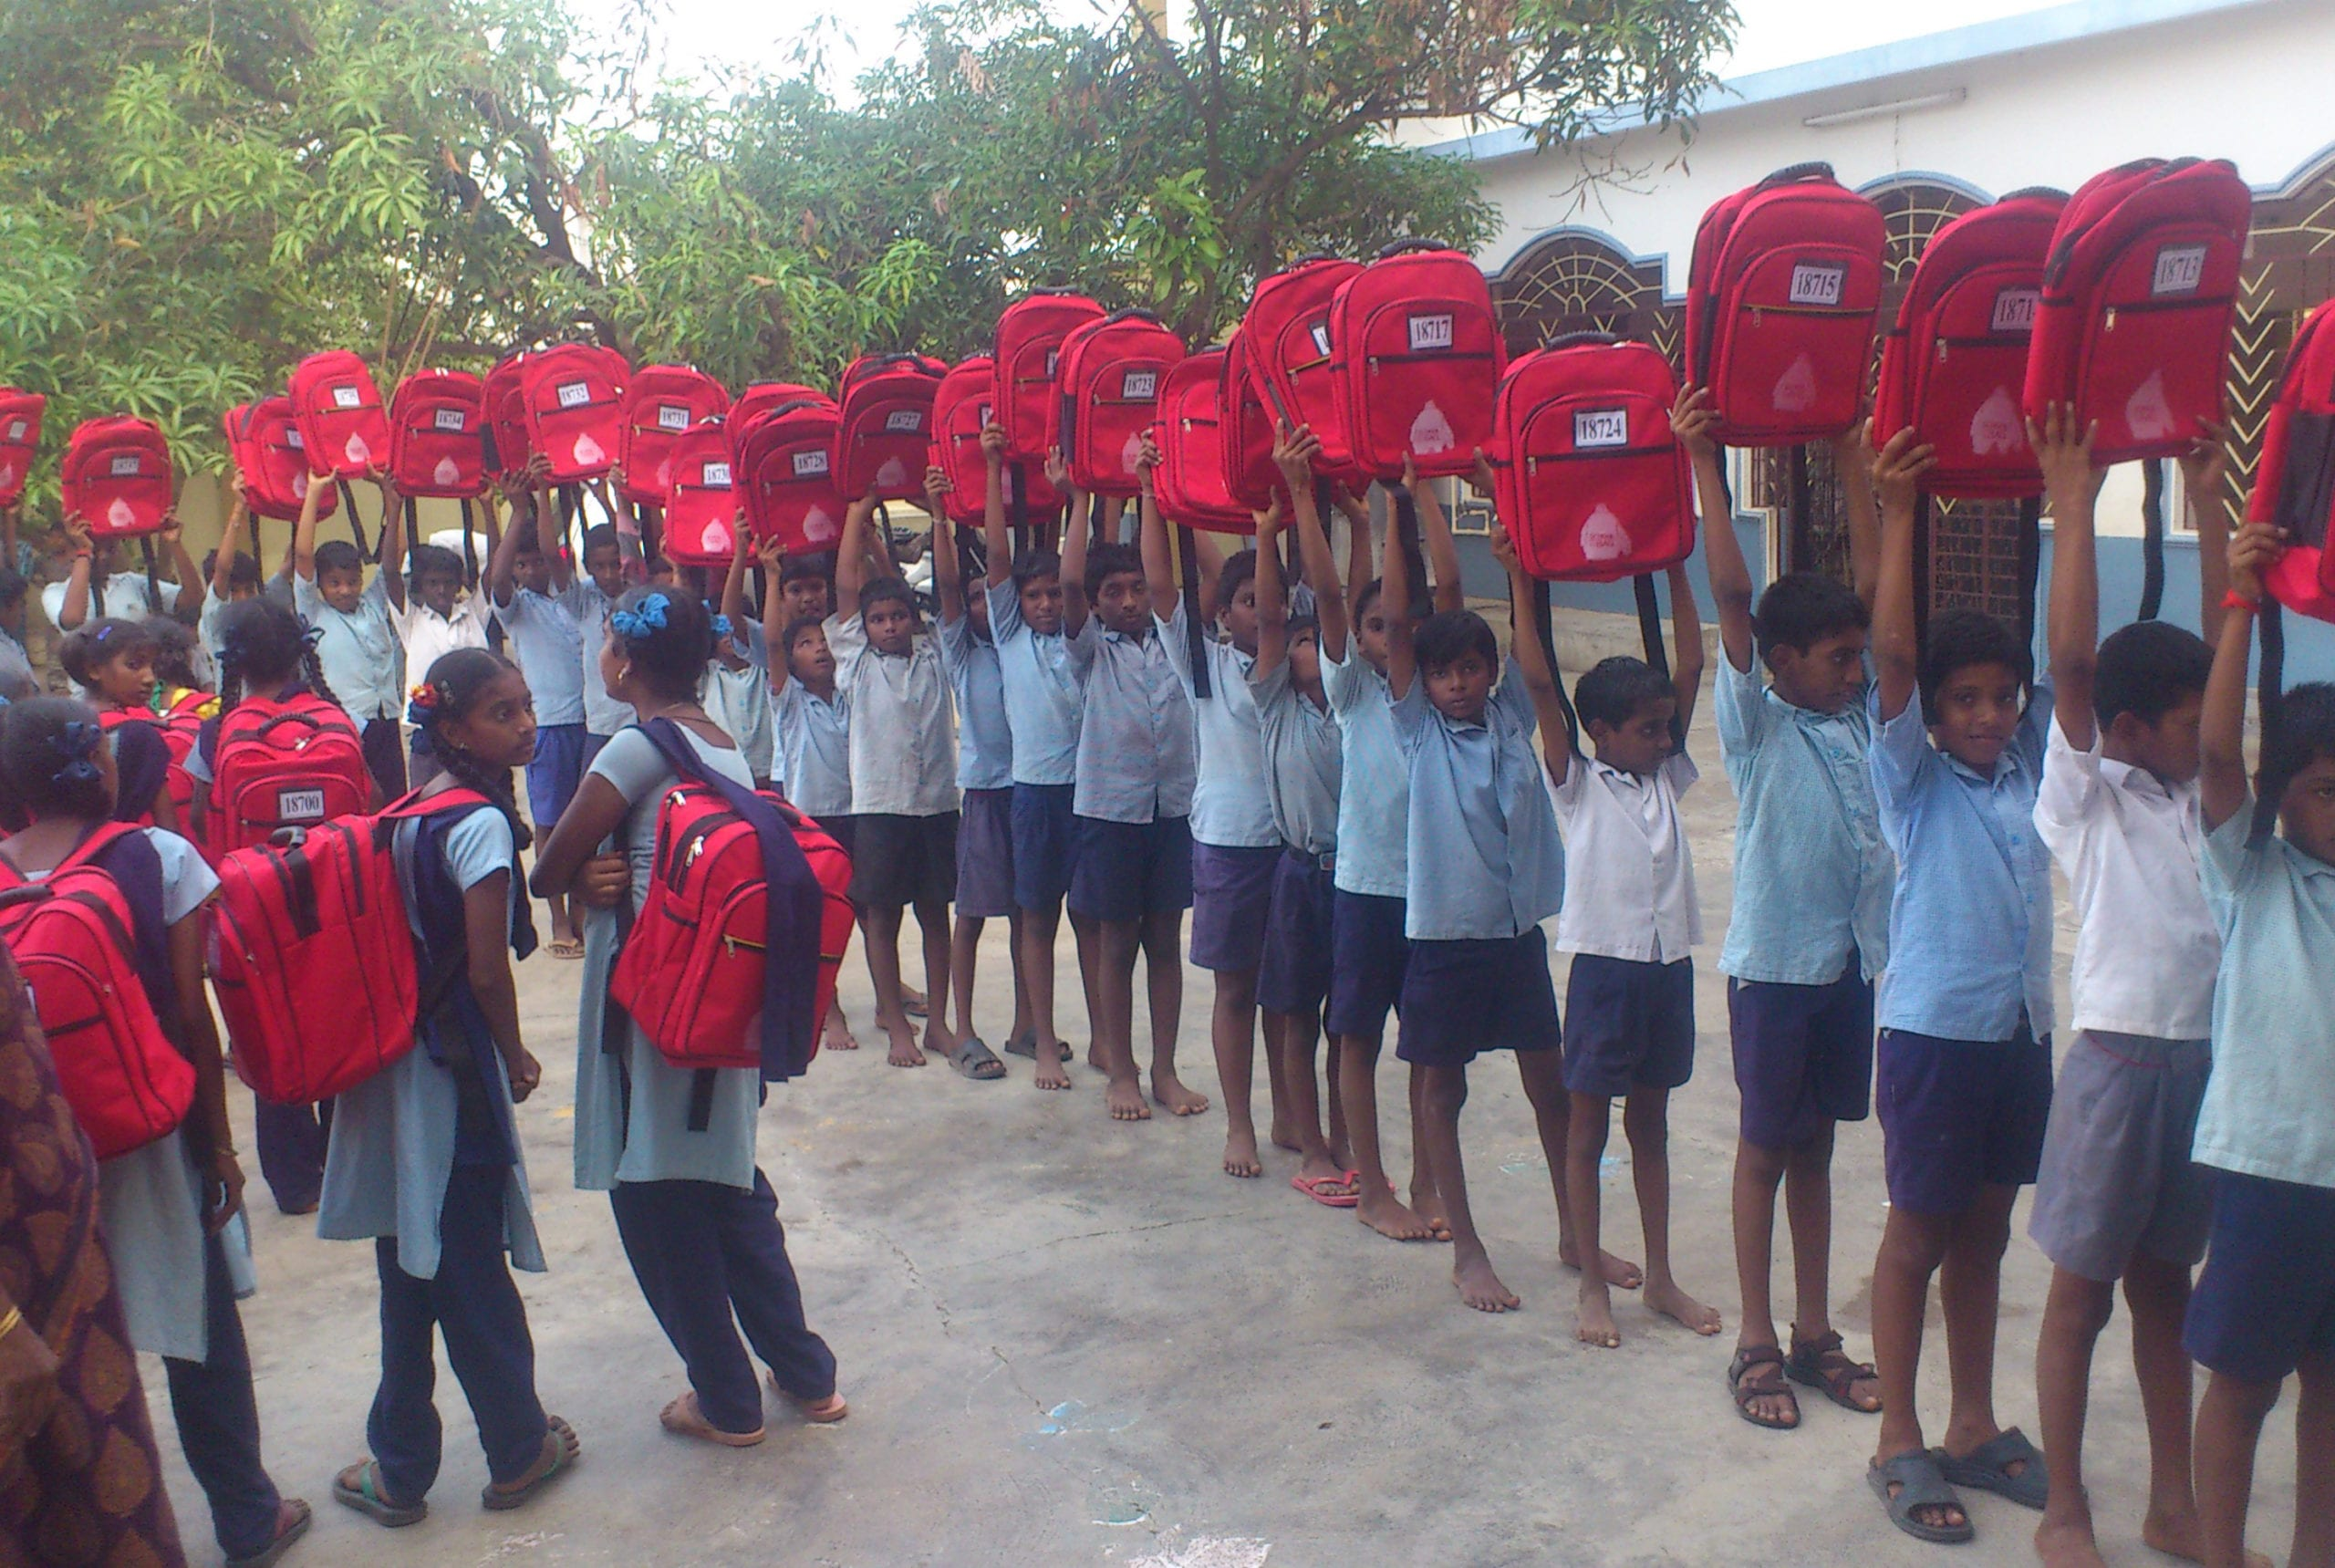 India - School with SchoolBags